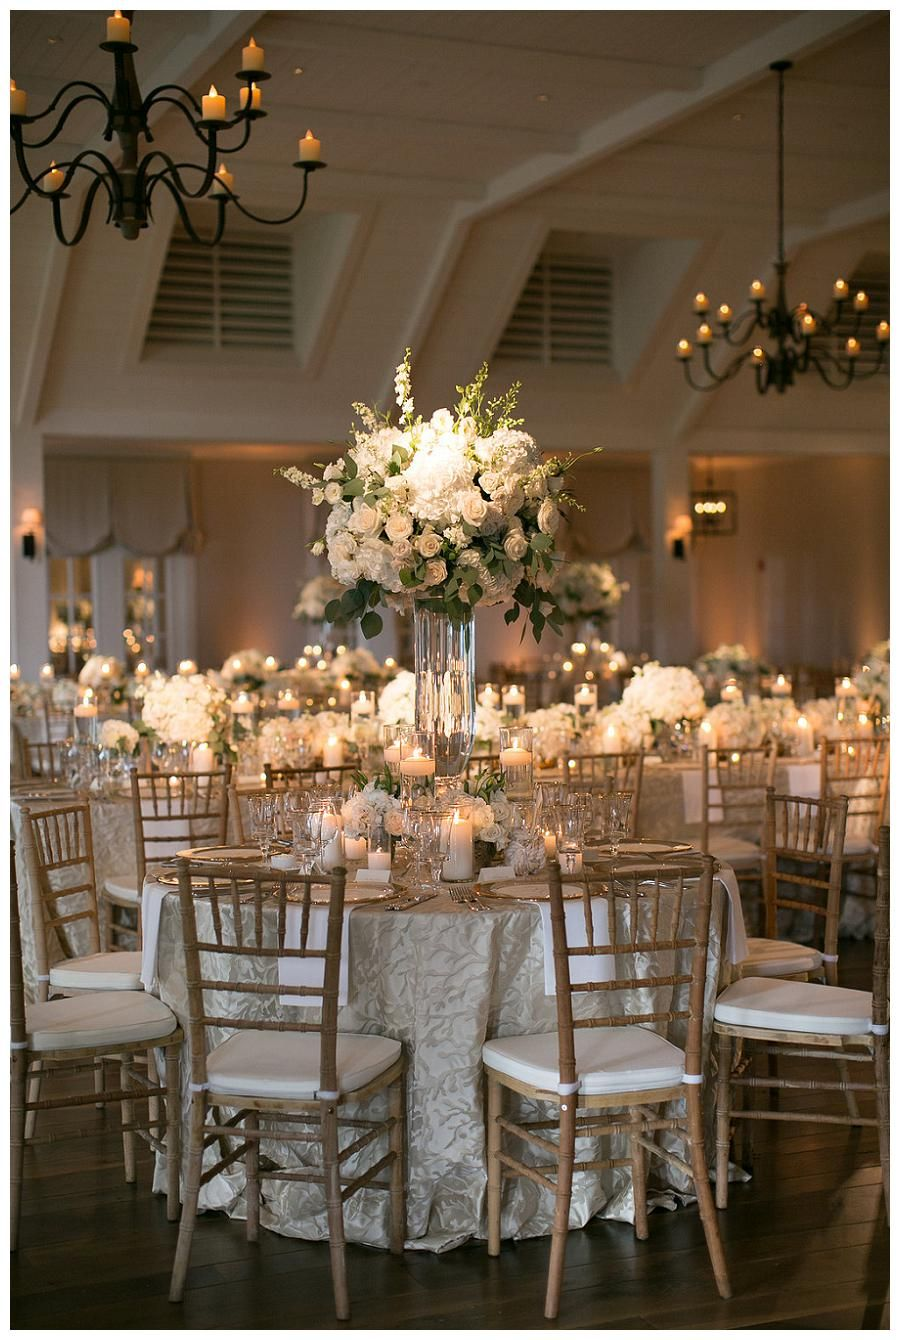 Gold Ivory And White Wedding Reception Decor With White Florals